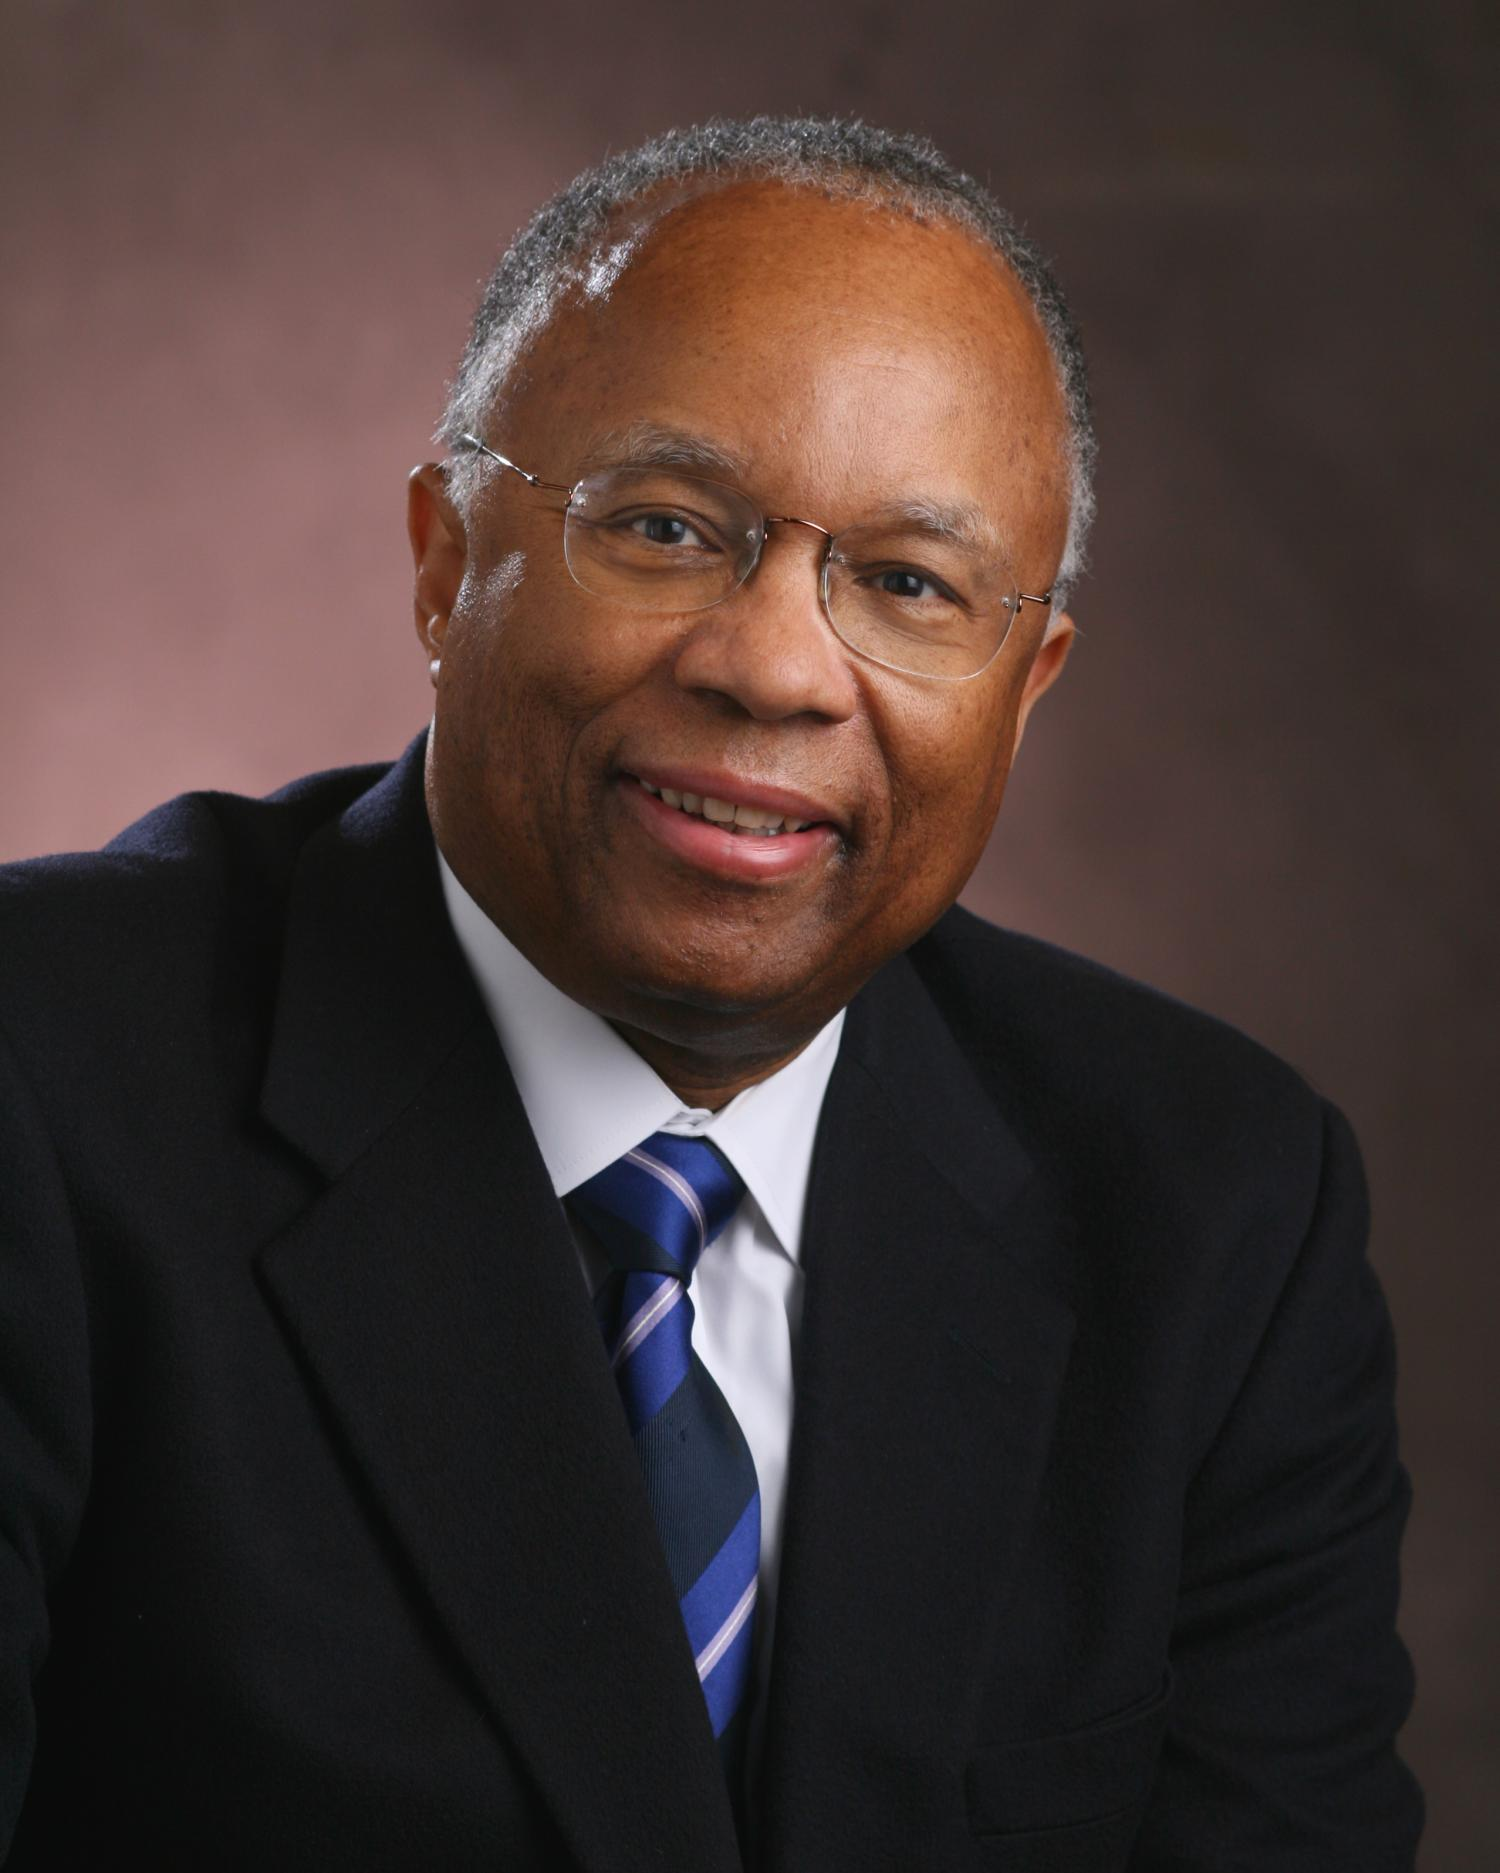 Larry Thompson - Larry D. Thompson, is the former U.S. Deputy Attorney General (2001-2003), the second highest ranking position in the U.S. Department of Justice. He now serves as Counsel at Finch McCranie LLP,In a distinguished public and private sector career over more than three decades, Mr. Thompson also has prosecuted complex cases as U.S. Attorney for the Northern District of Georgia, directed internal investigations and defended individuals and businesses in special matters as a partner in a major law firm, and served as General Counsel and Senior Vice President of PepsiCo, Inc.During his tenure as Deputy Attorney General, Mr. Thompson led the Department of Justice's National Security Coordination Council, as well as the government-wide Corporate Fraud Task Force. In 2000, Congress selected Mr. Thompson to chair the bi-partisan Judicial Review Commission on Foreign Asset Control. In 2004, he served as a Senior Fellow with the Brookings Institution in Washington, D.C.Prior to serving as U.S. Deputy Attorney General, Mr. Thompson was a partner with the Atlanta-based law firm of King & Spalding, LLP, and was co-founder of the firm's special matters and government investigations practice. He previously served as U.S. Attorney for the Northern District of Georgia from 1982 to 1986. From 1995 to 1998, he served as Independent Counsel for the Department of Housing and Urban Development Investigation.Most recently, Mr. Thompson served as Senior Vice President for Government Affairs and General Counsel for PepsiCo. He also served as the John A. Sibley Professor of Corporate and Business Law at the University of Georgia, a position he will continue while with Finch McCranie LLP.